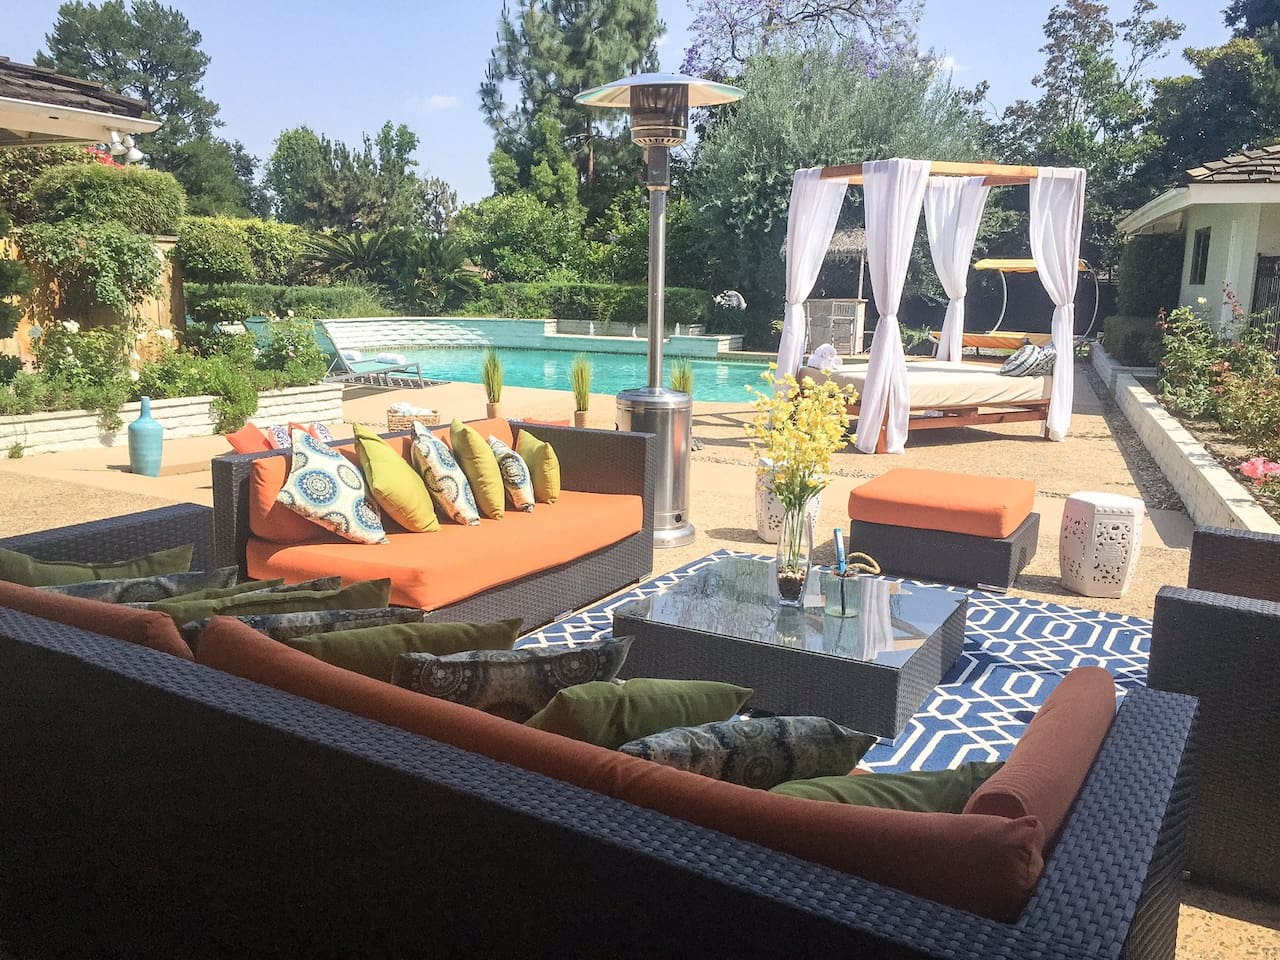 Resort Style Back Yard - Consist of Patio Furniture, 2 Day beds and 4 Chaise Loungers.